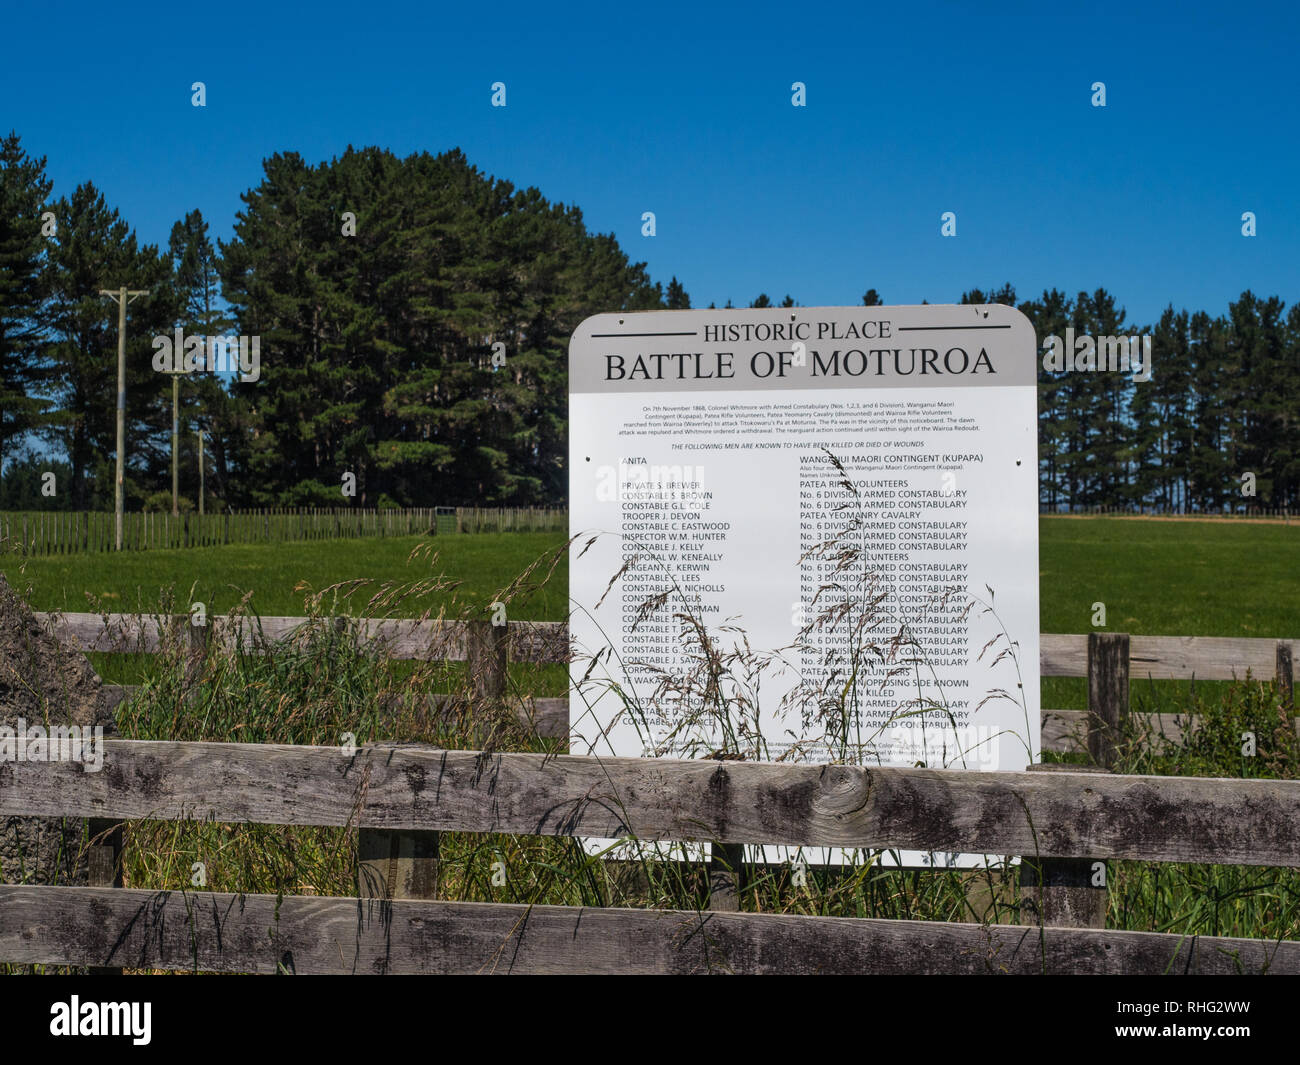 This memorial to the battle of Moturoa stands a short distance south of the pa site, South Taranaki, New Zealand - Stock Image